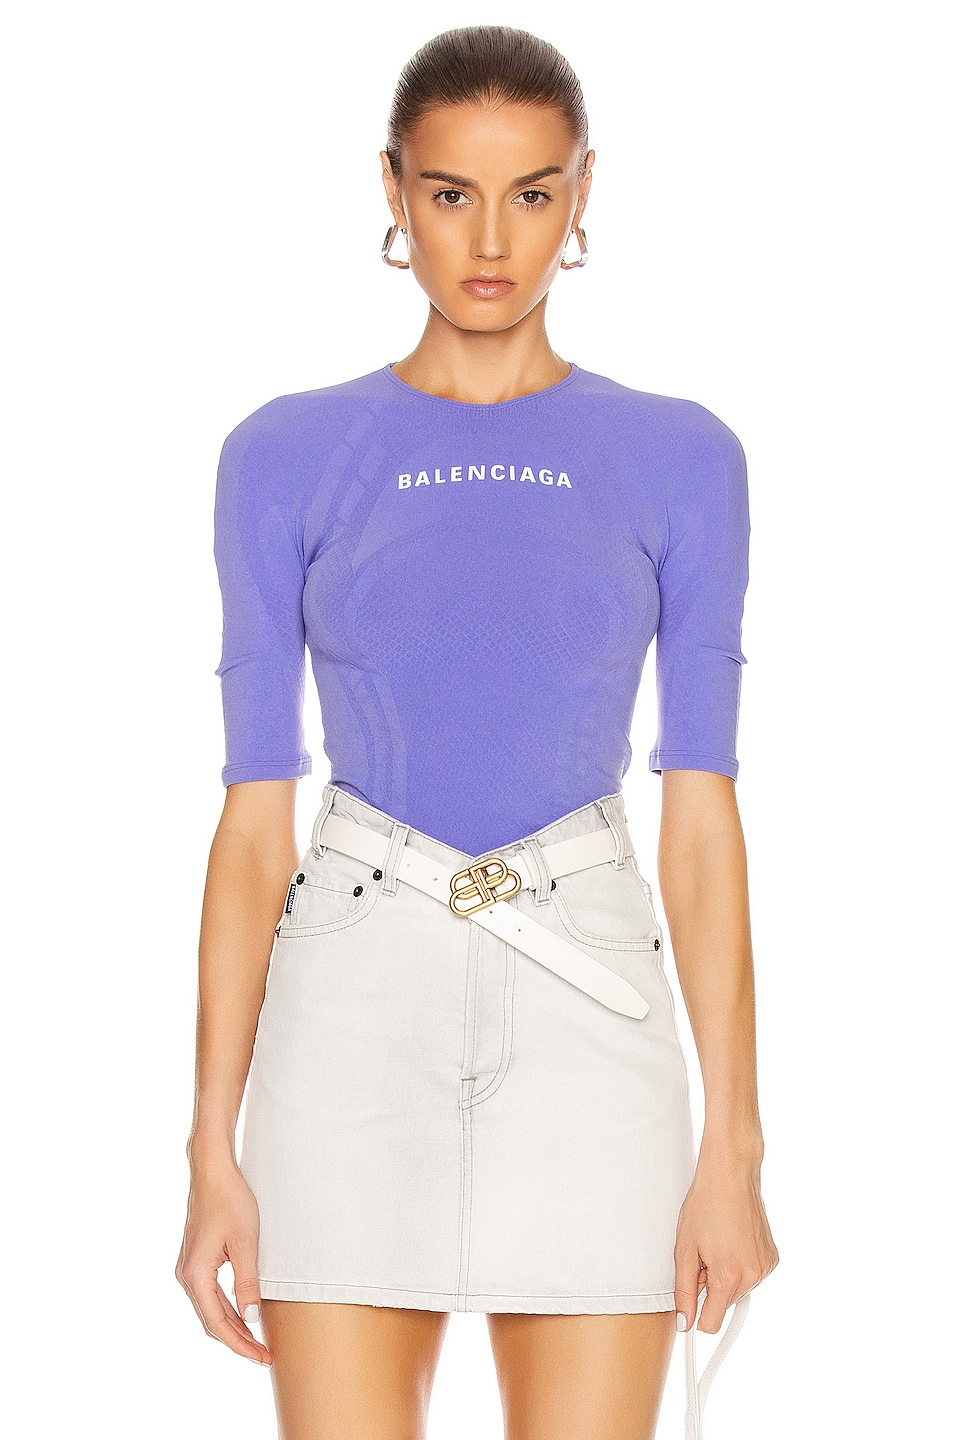 Image 1 of Balenciaga Athletic Top in Lilac